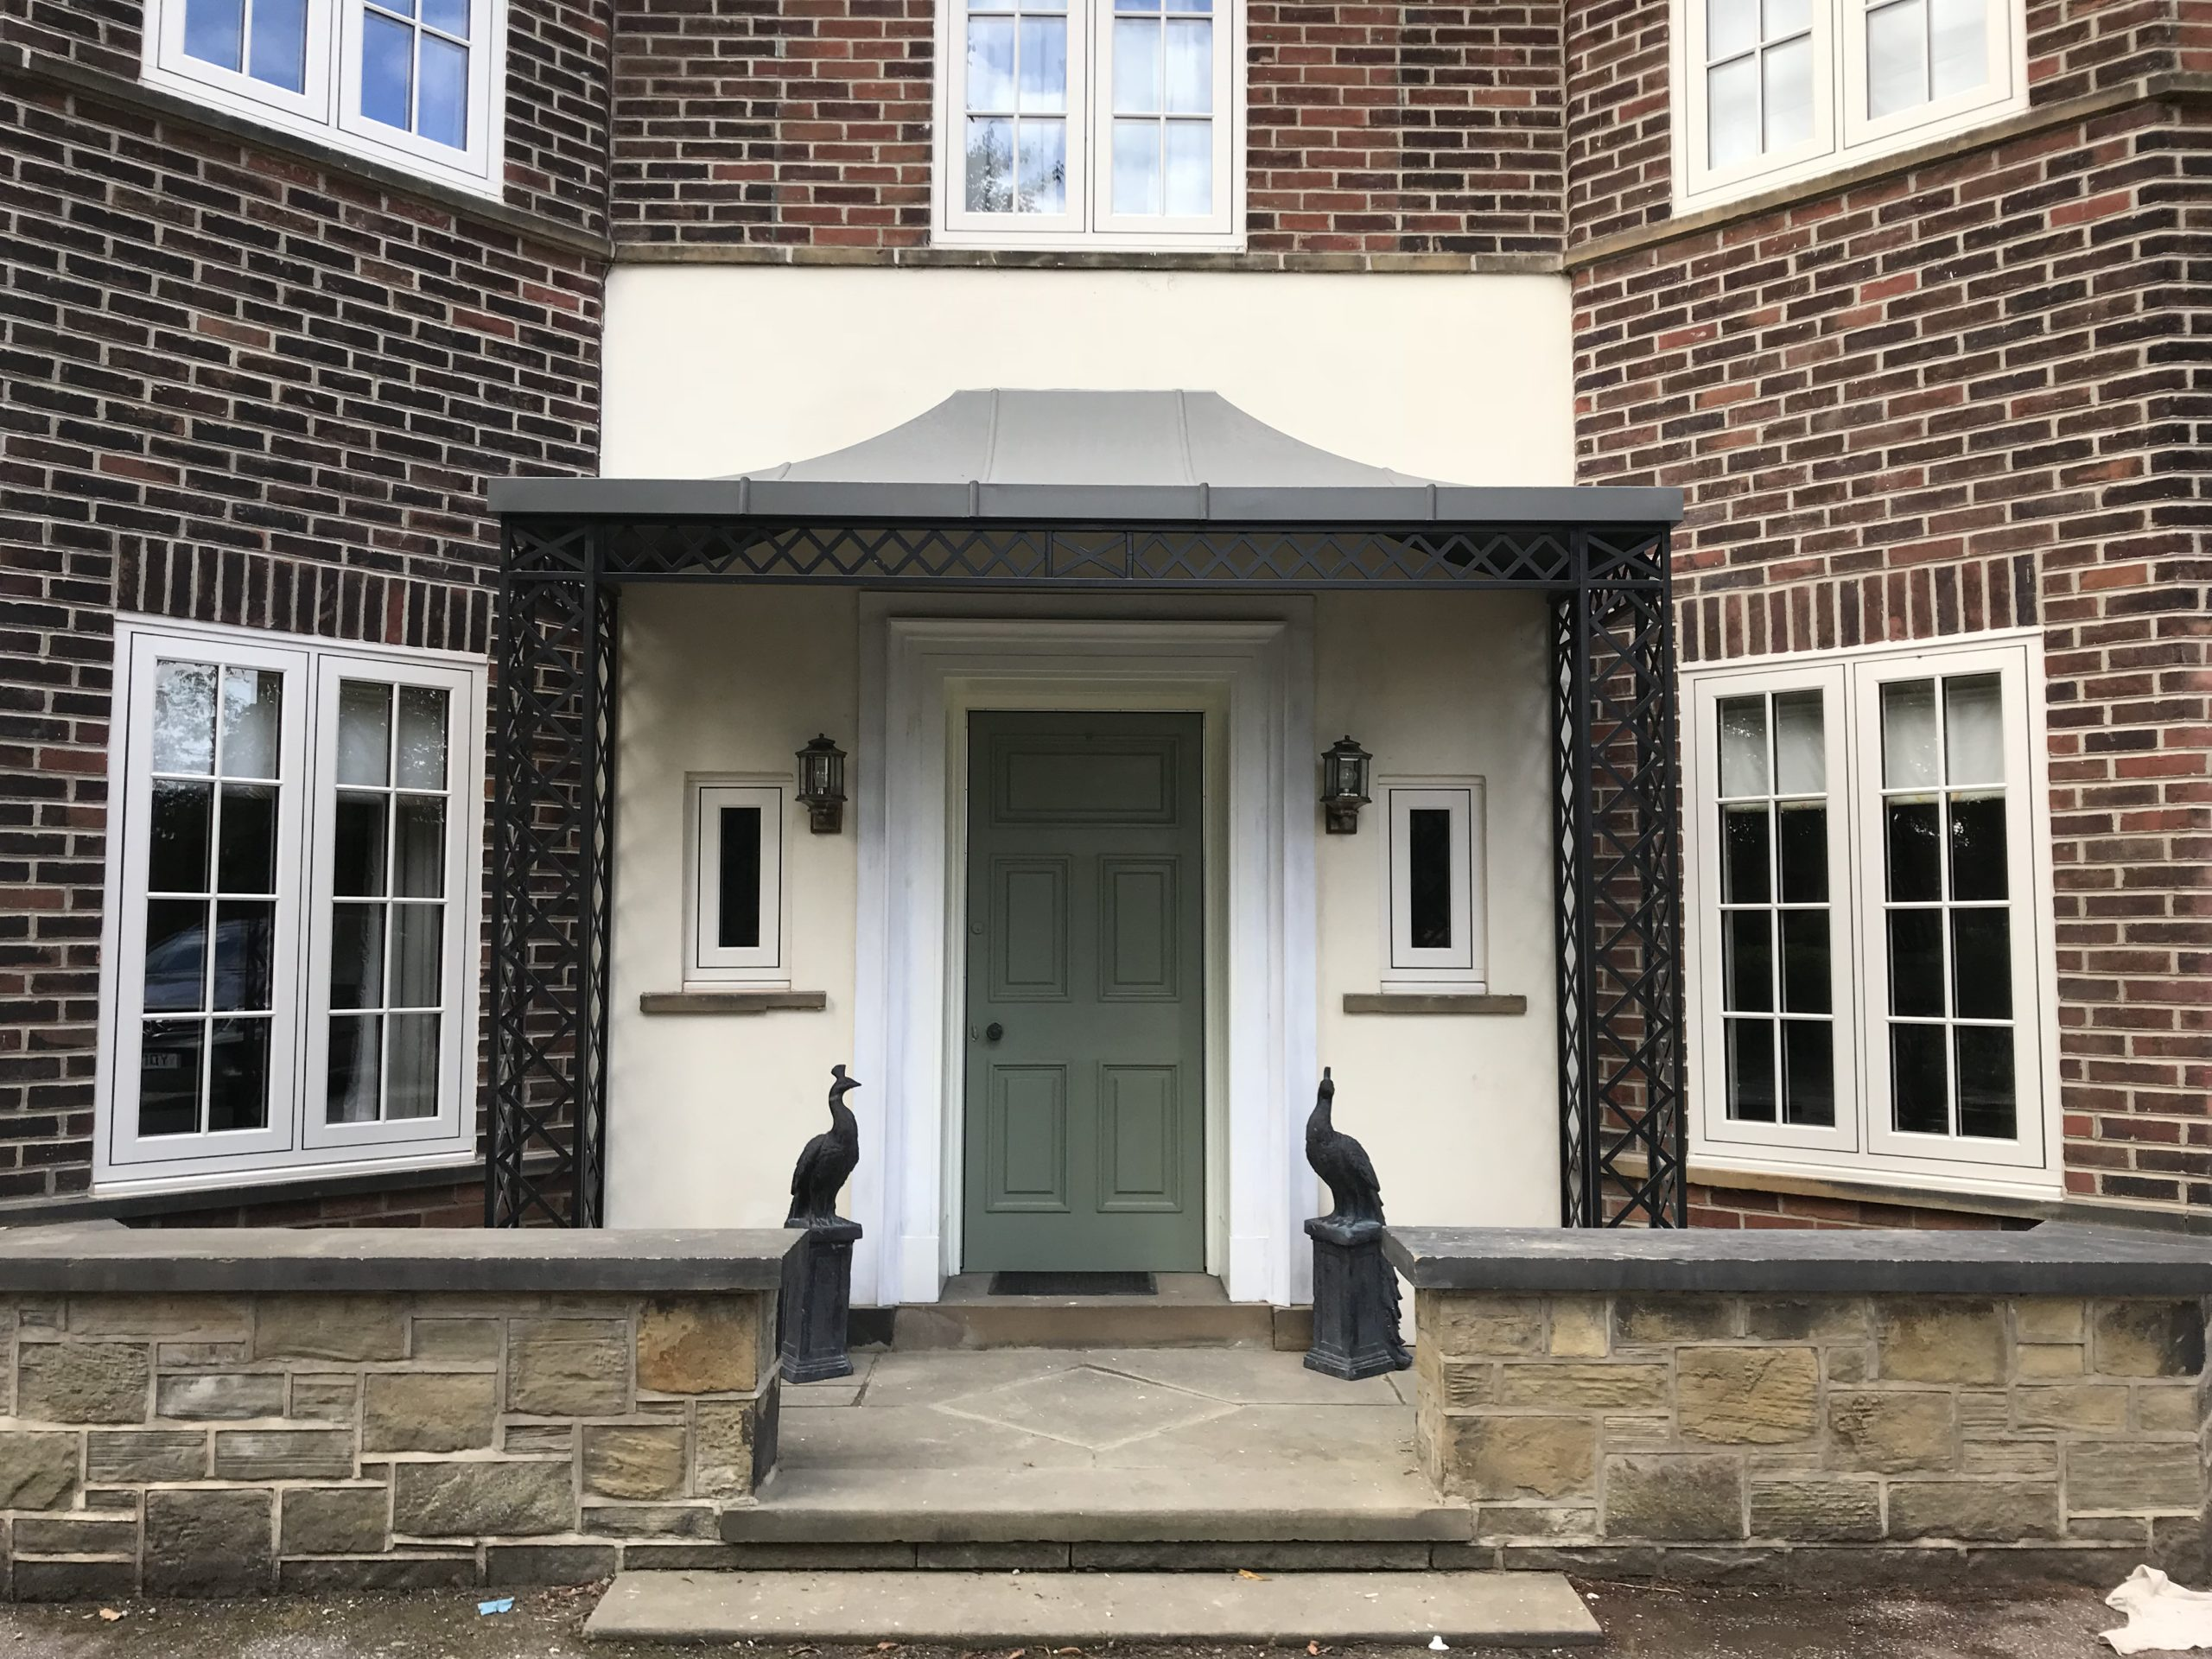 Laser profile cut metal Regency wide design Double Width Porch awning with Complete Zinc Canopy Roof Cover Powder Coated in Lead grey colour